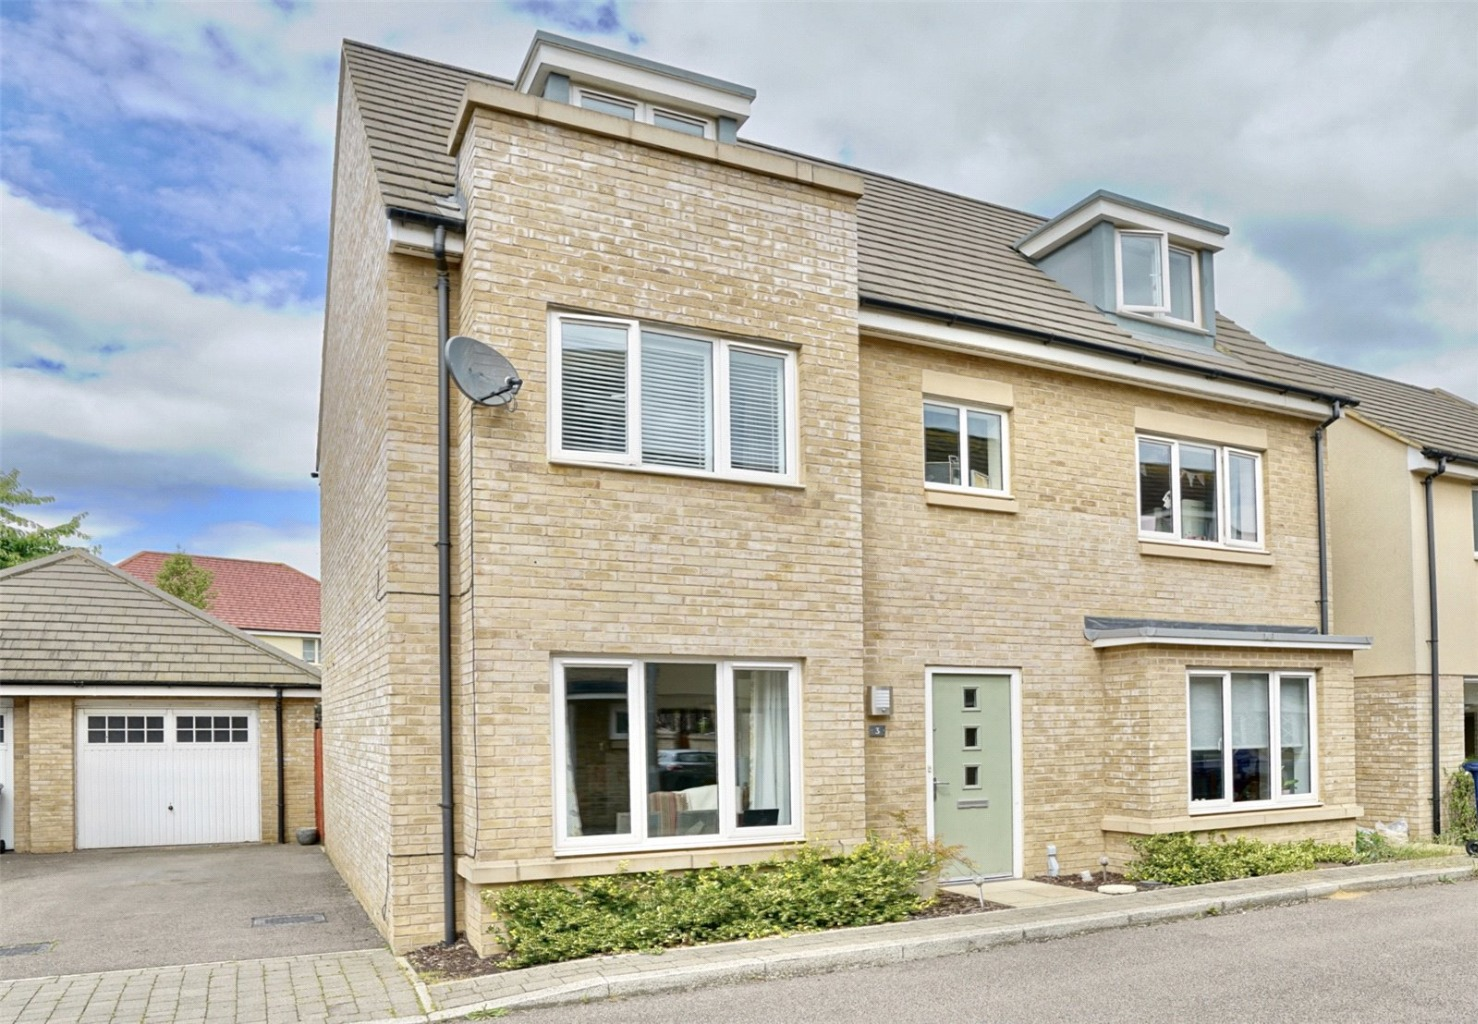 5 bed  for sale in Day Close, St. Neots, PE19